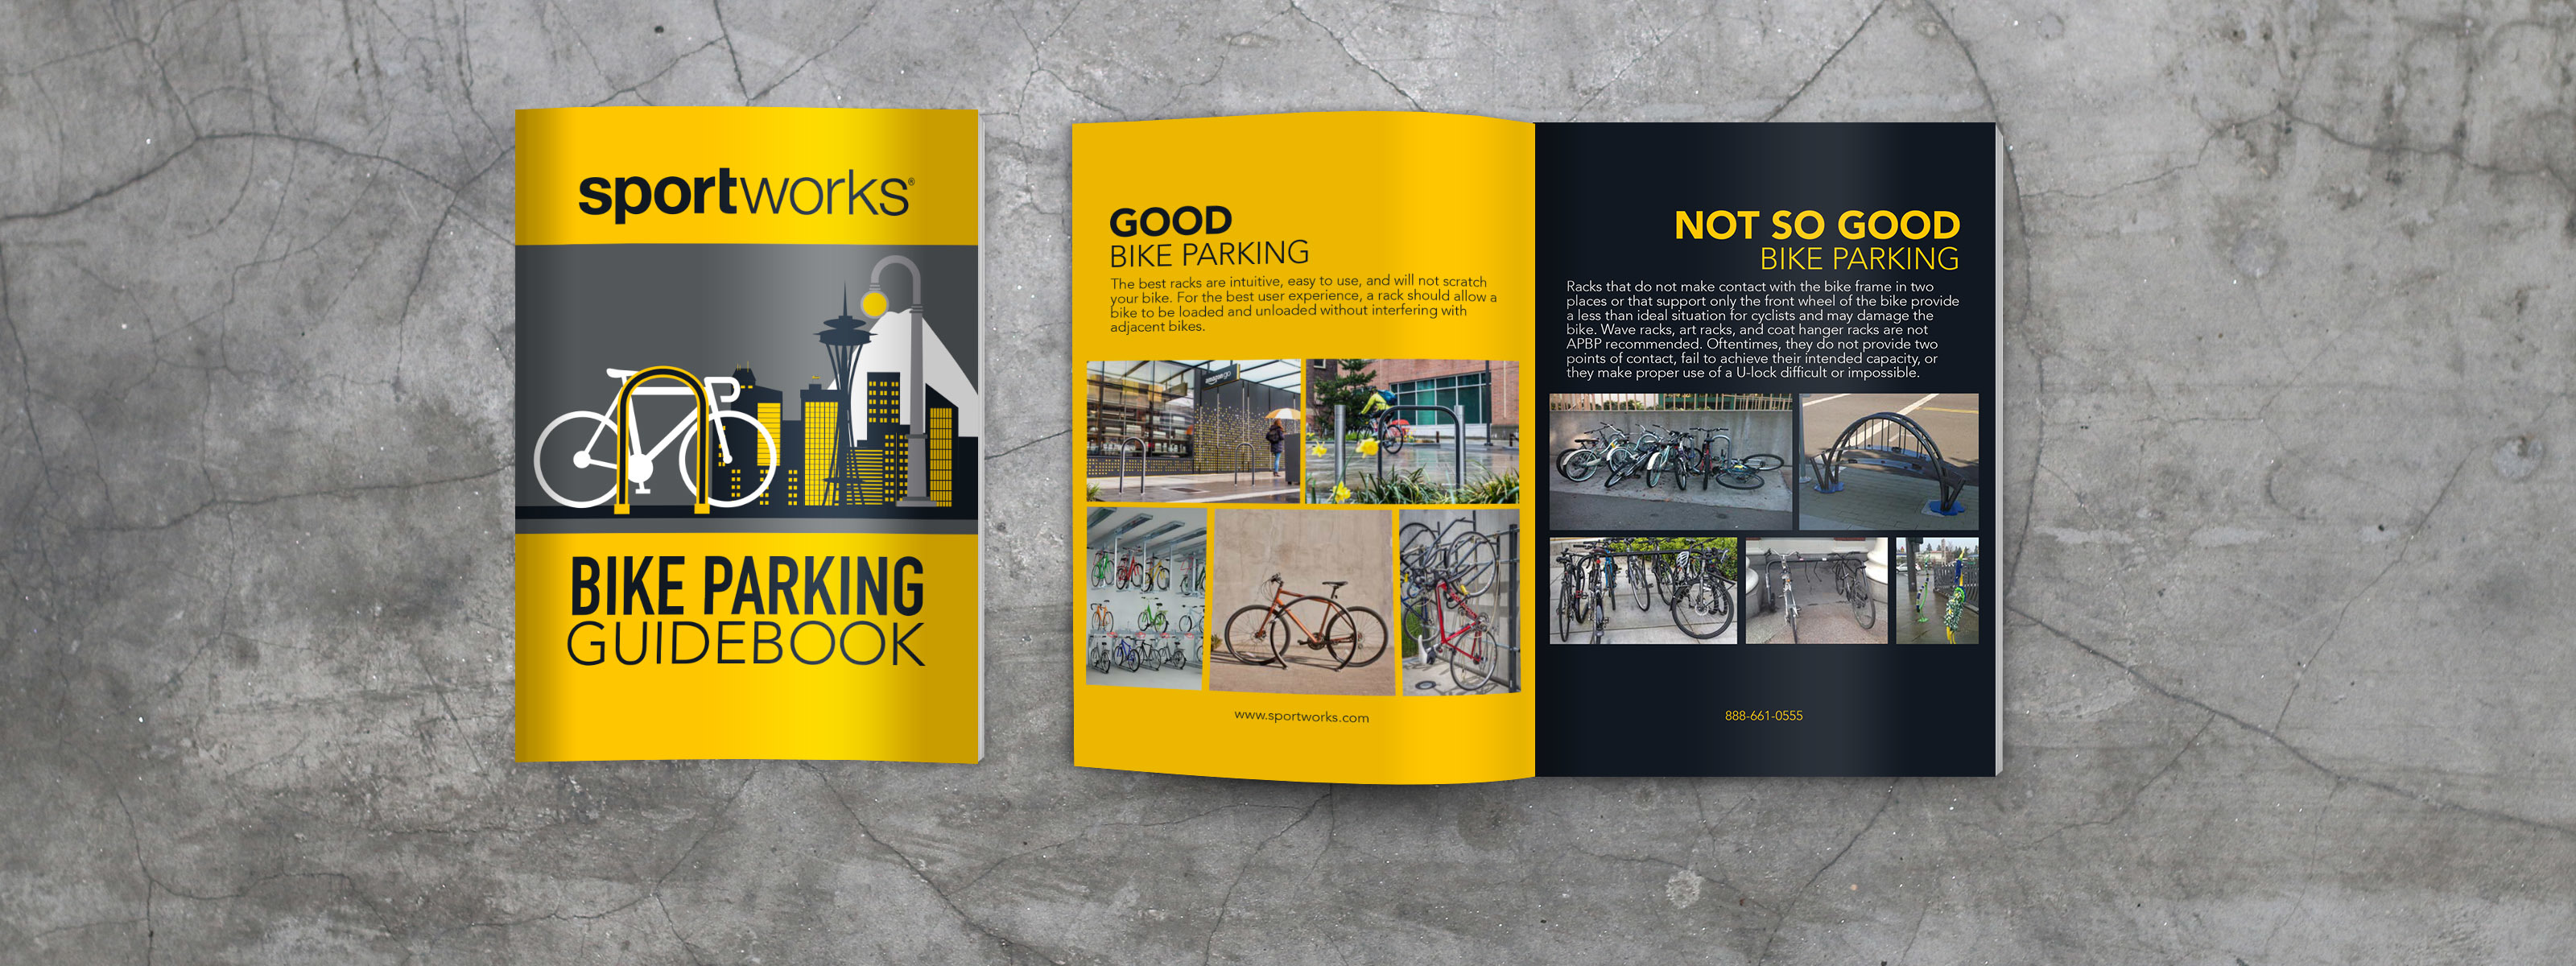 Bike Parking Guidebook Image